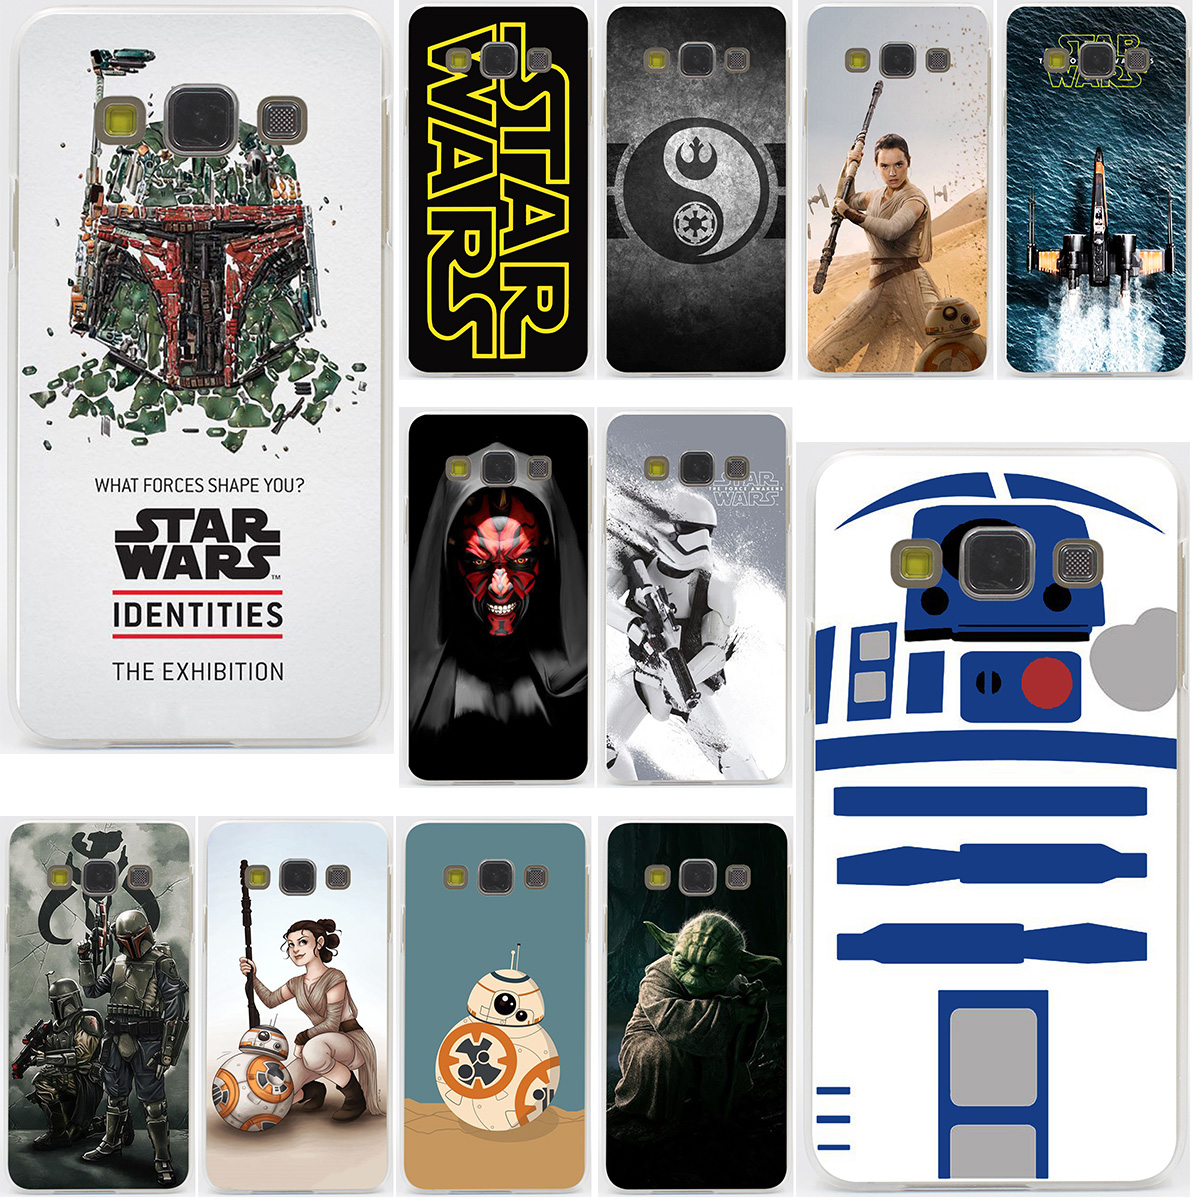 YODA star wars and bb8 Hard for Samsung Galaxy A3 A5 J3 J5 J7 2015 2016 2017 & Grand Prime Note 5 4 3 2 Case Cover